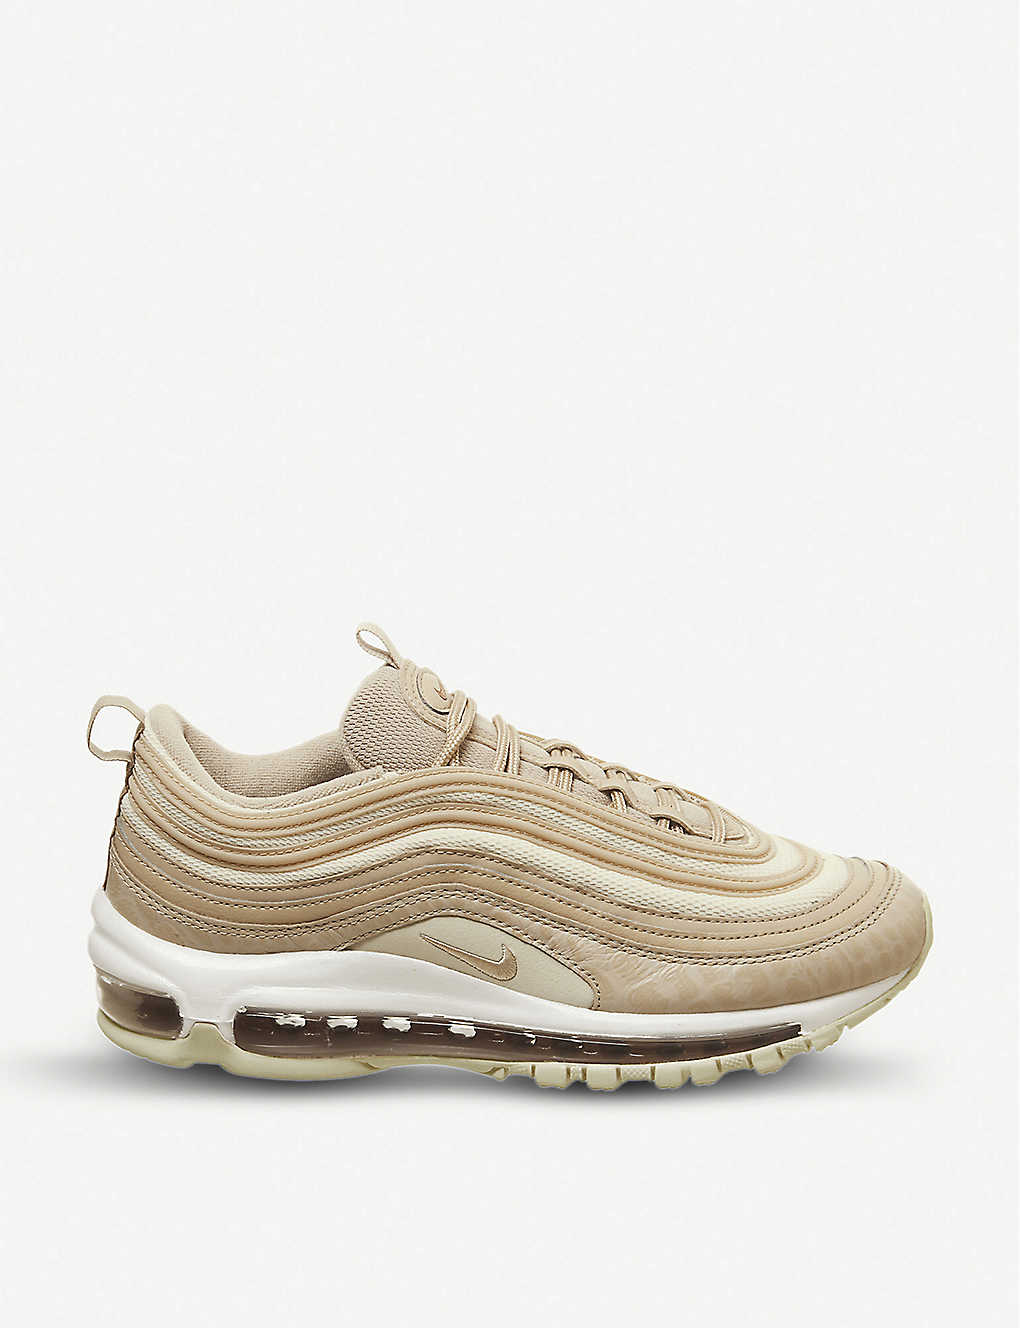 low priced f1448 daab0 Air Max 97 tonal leather trainers